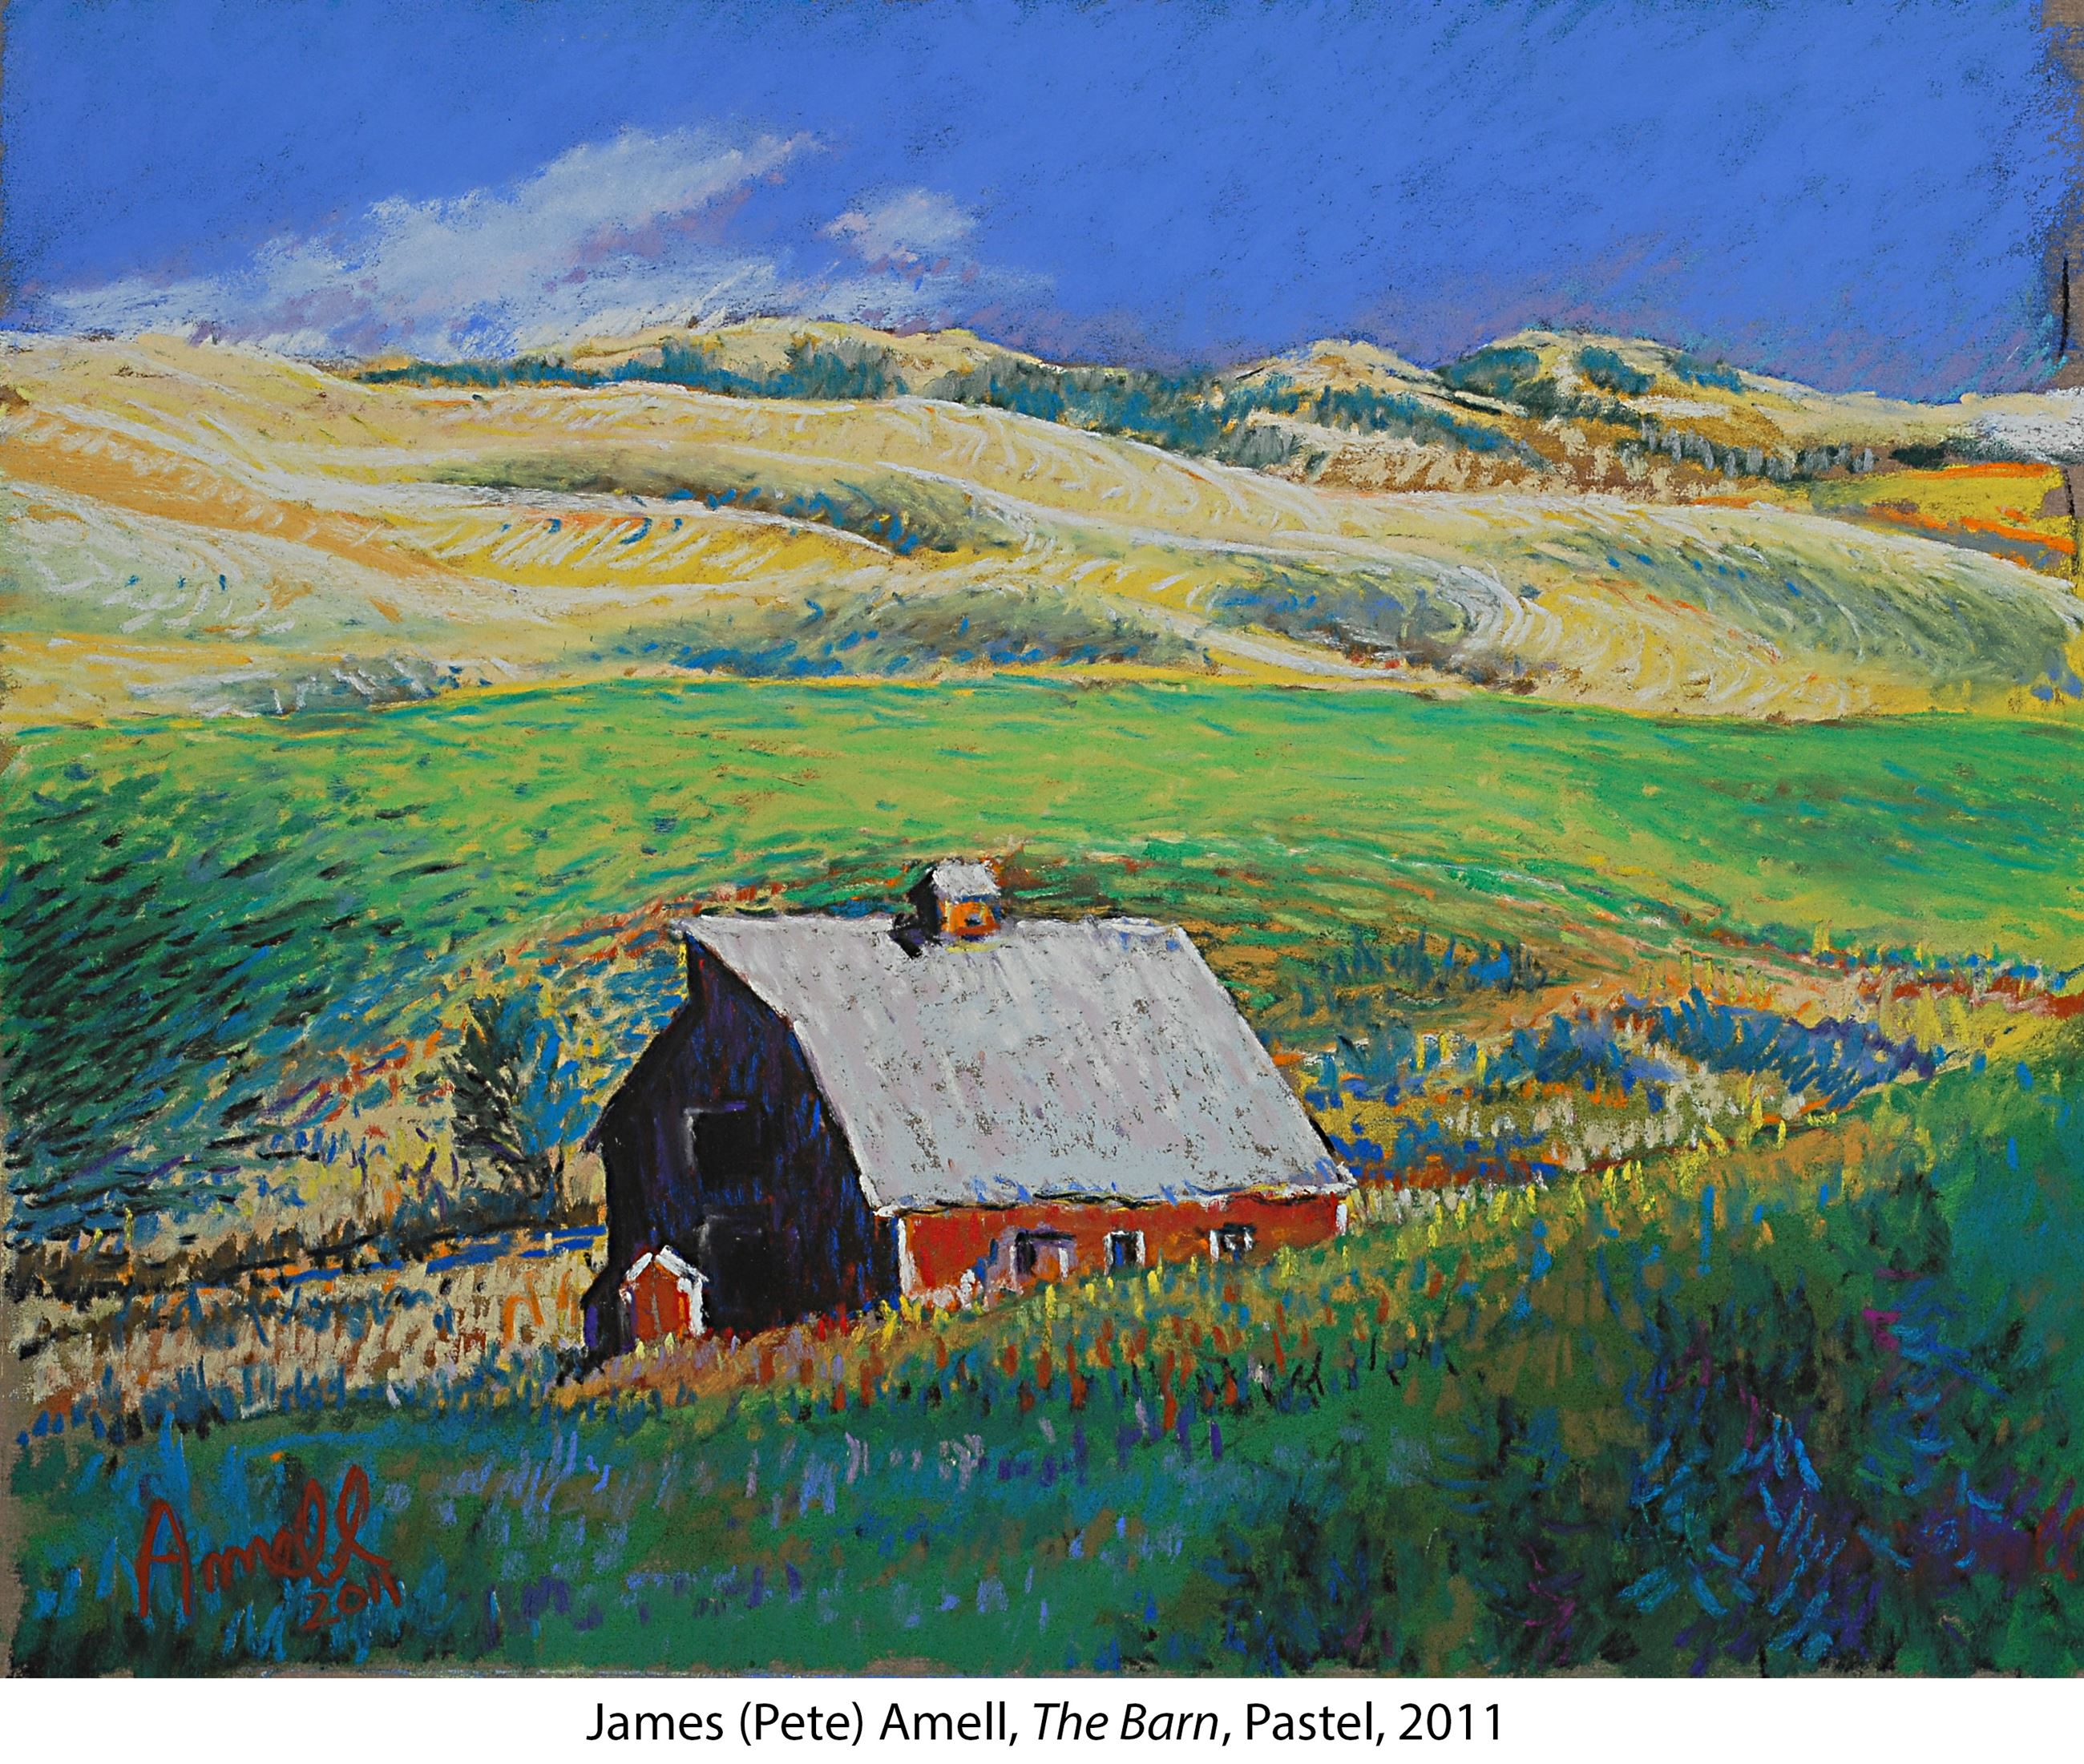 James (Pete) Amell, The Barn, Pastel, 2011